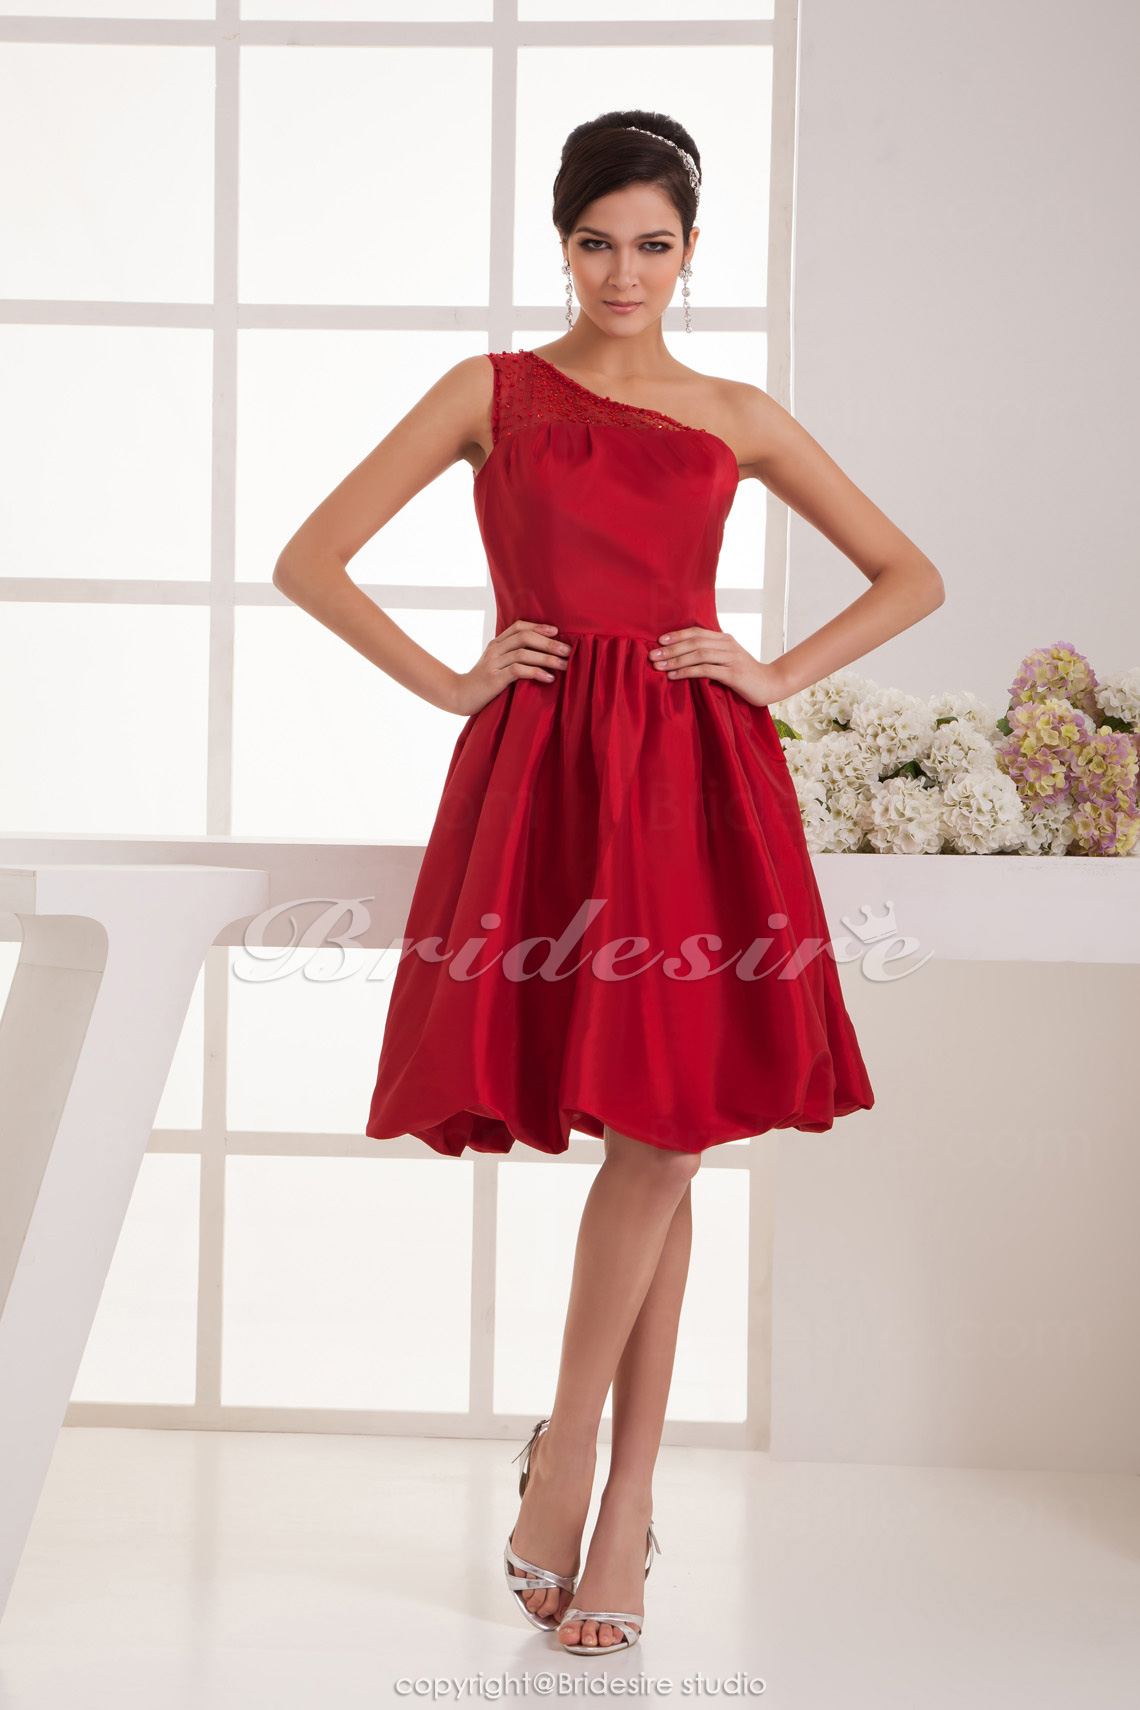 A-line One Shoulder Knee-length Sleeveless Satin Bridesmaid Dress